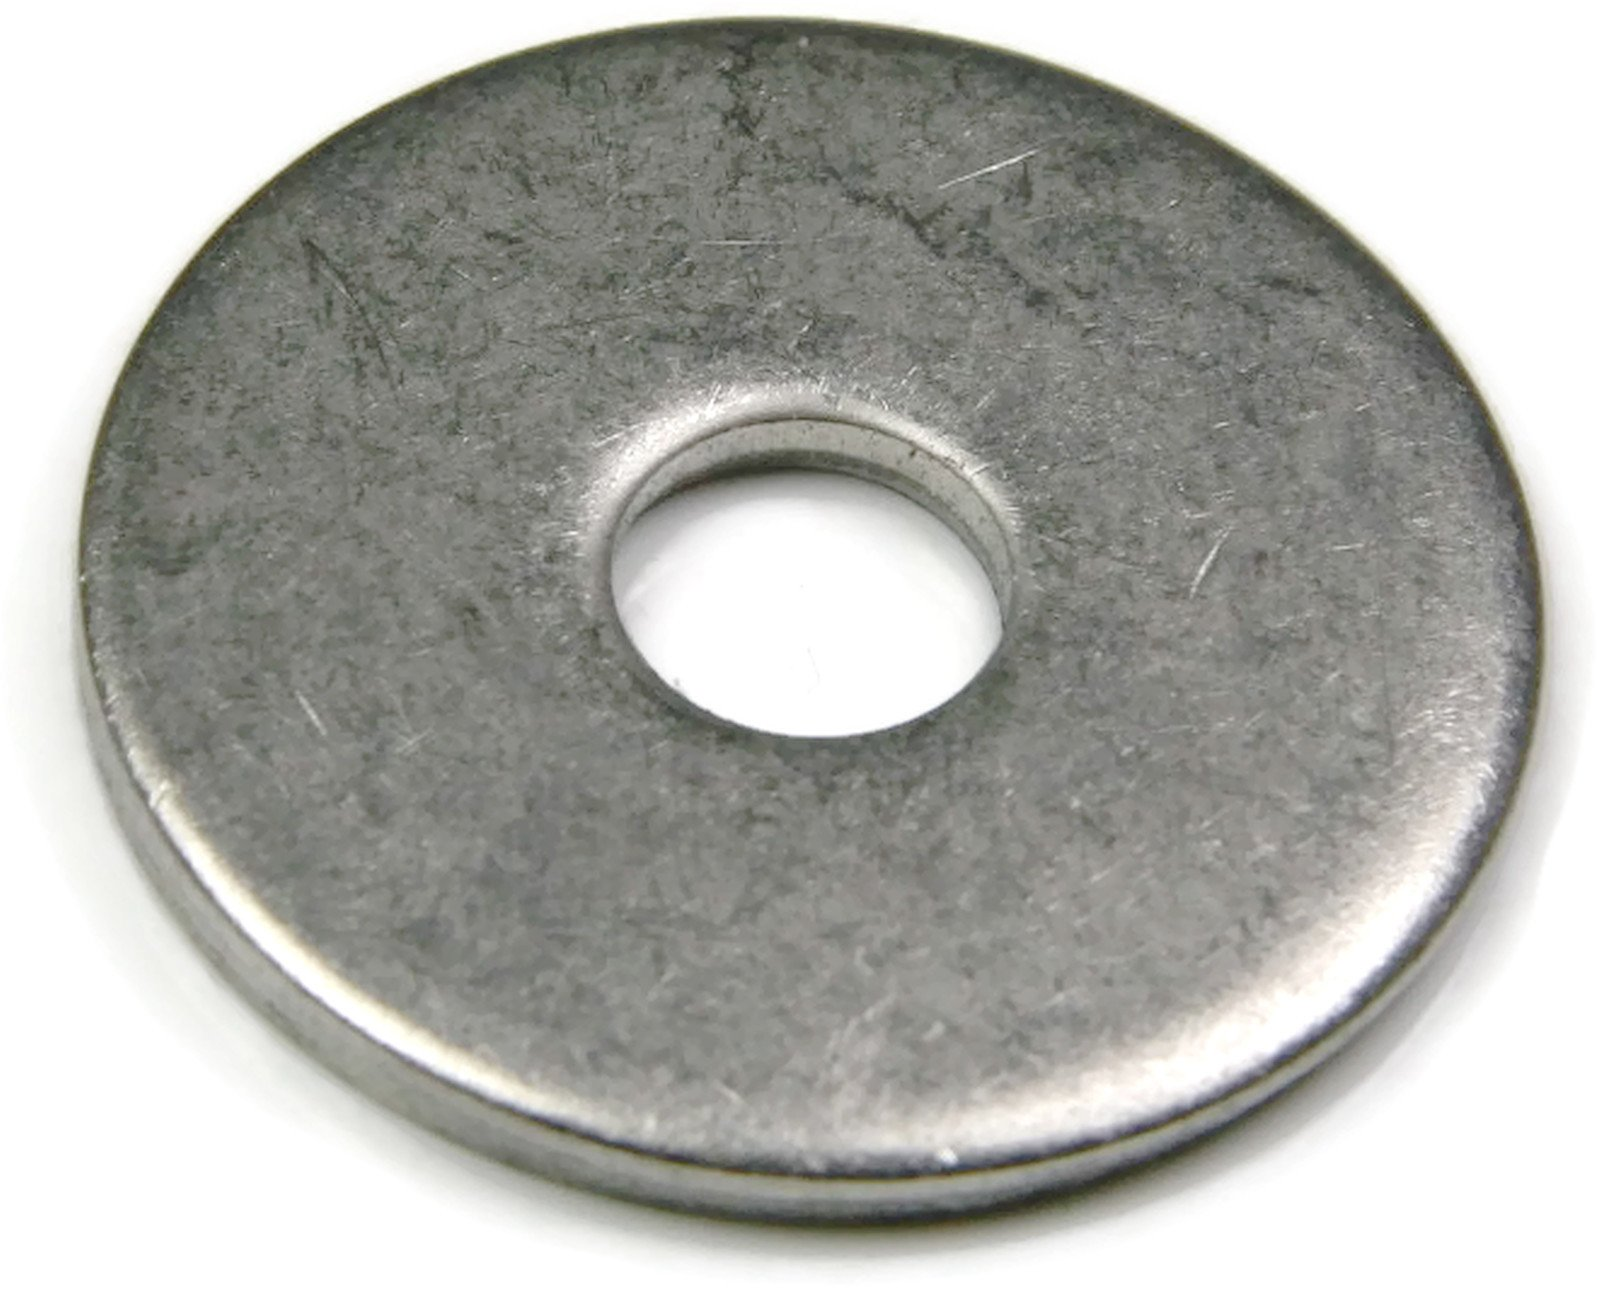 Extra Thick Fender Washers 18-8 Stainless Steel Washers - Pack of 250 Pieces (3/8'' x 1-1/2'' OD)